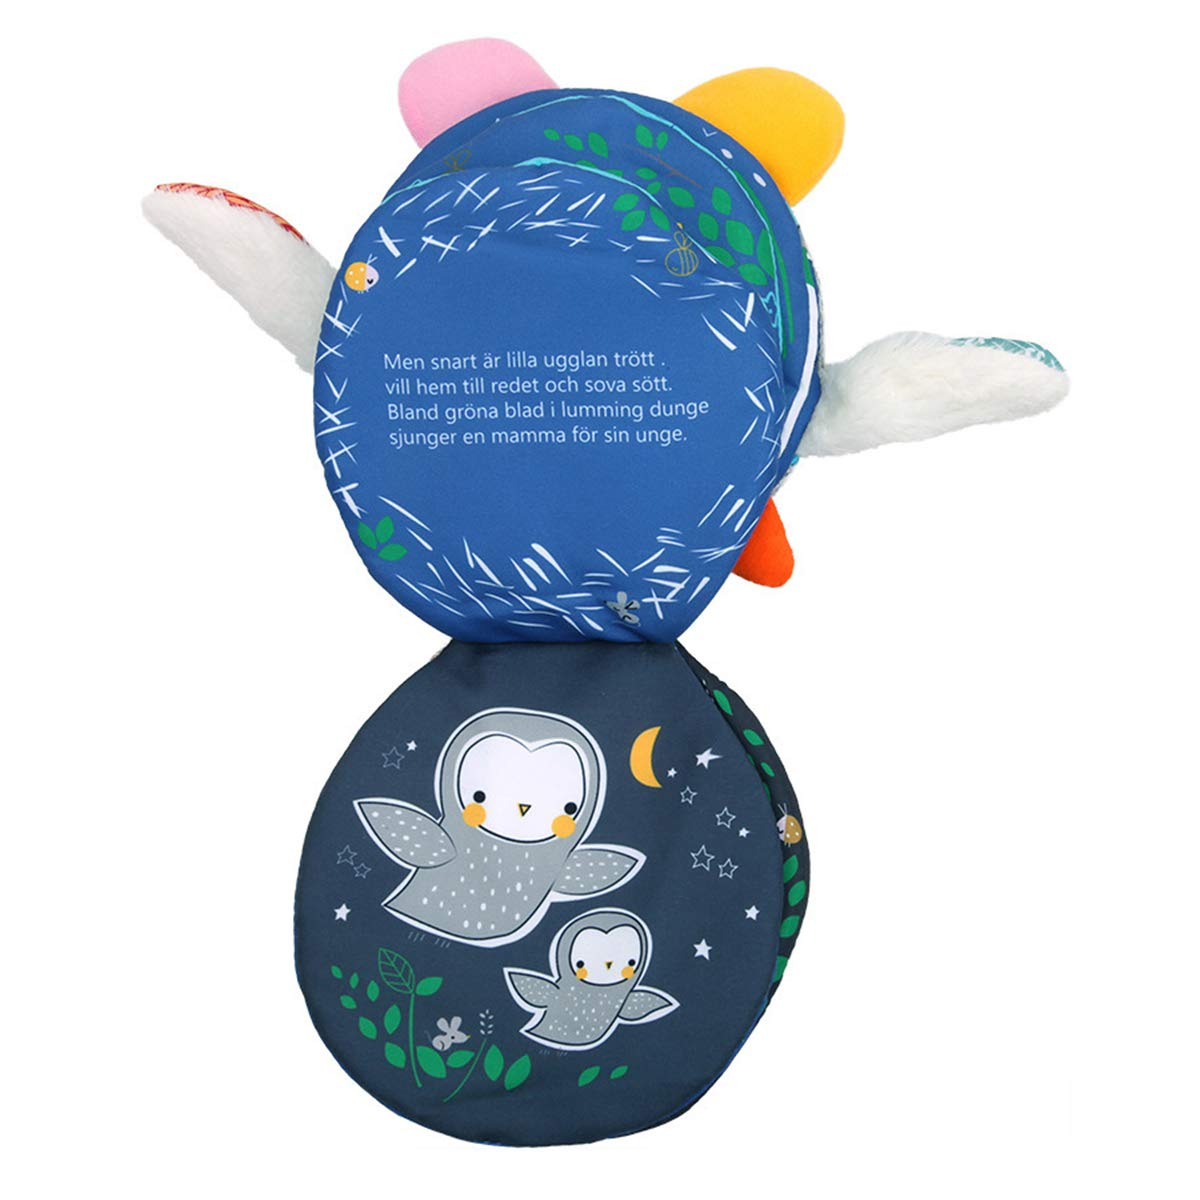 Dog 1 Year Old Early Educational Toys Activity Center Development Book Perfect Shower Gift for Toddlers Hosim Non-Toxic Soft Baby Fabric Cloth Books Children Infants and Kids Babies